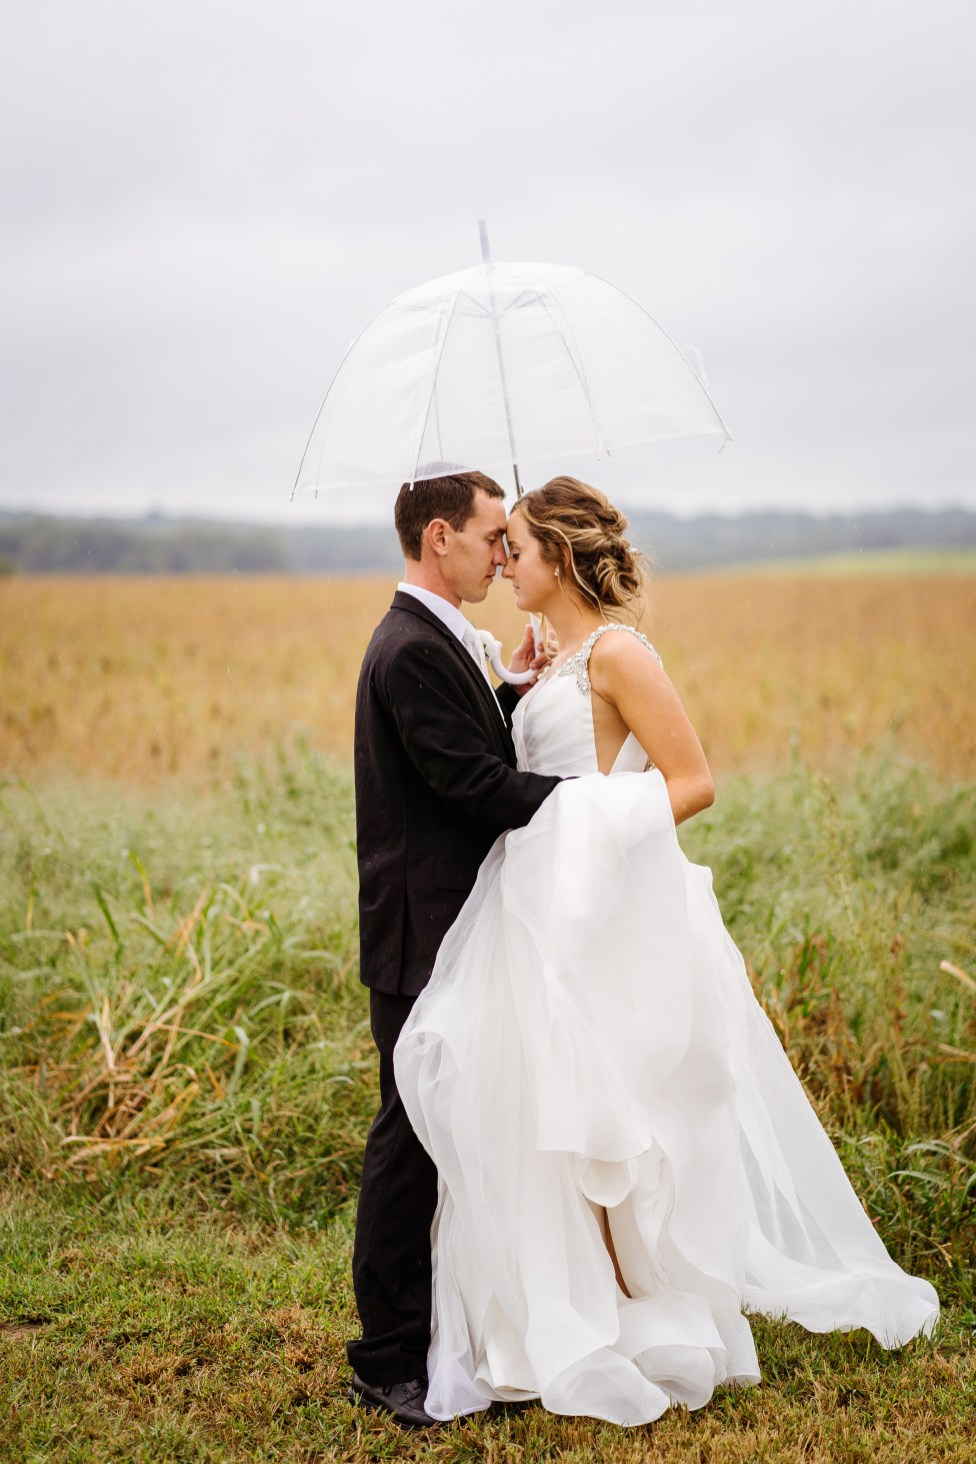 Schenk-FAVS-Wedding-FAVS-102